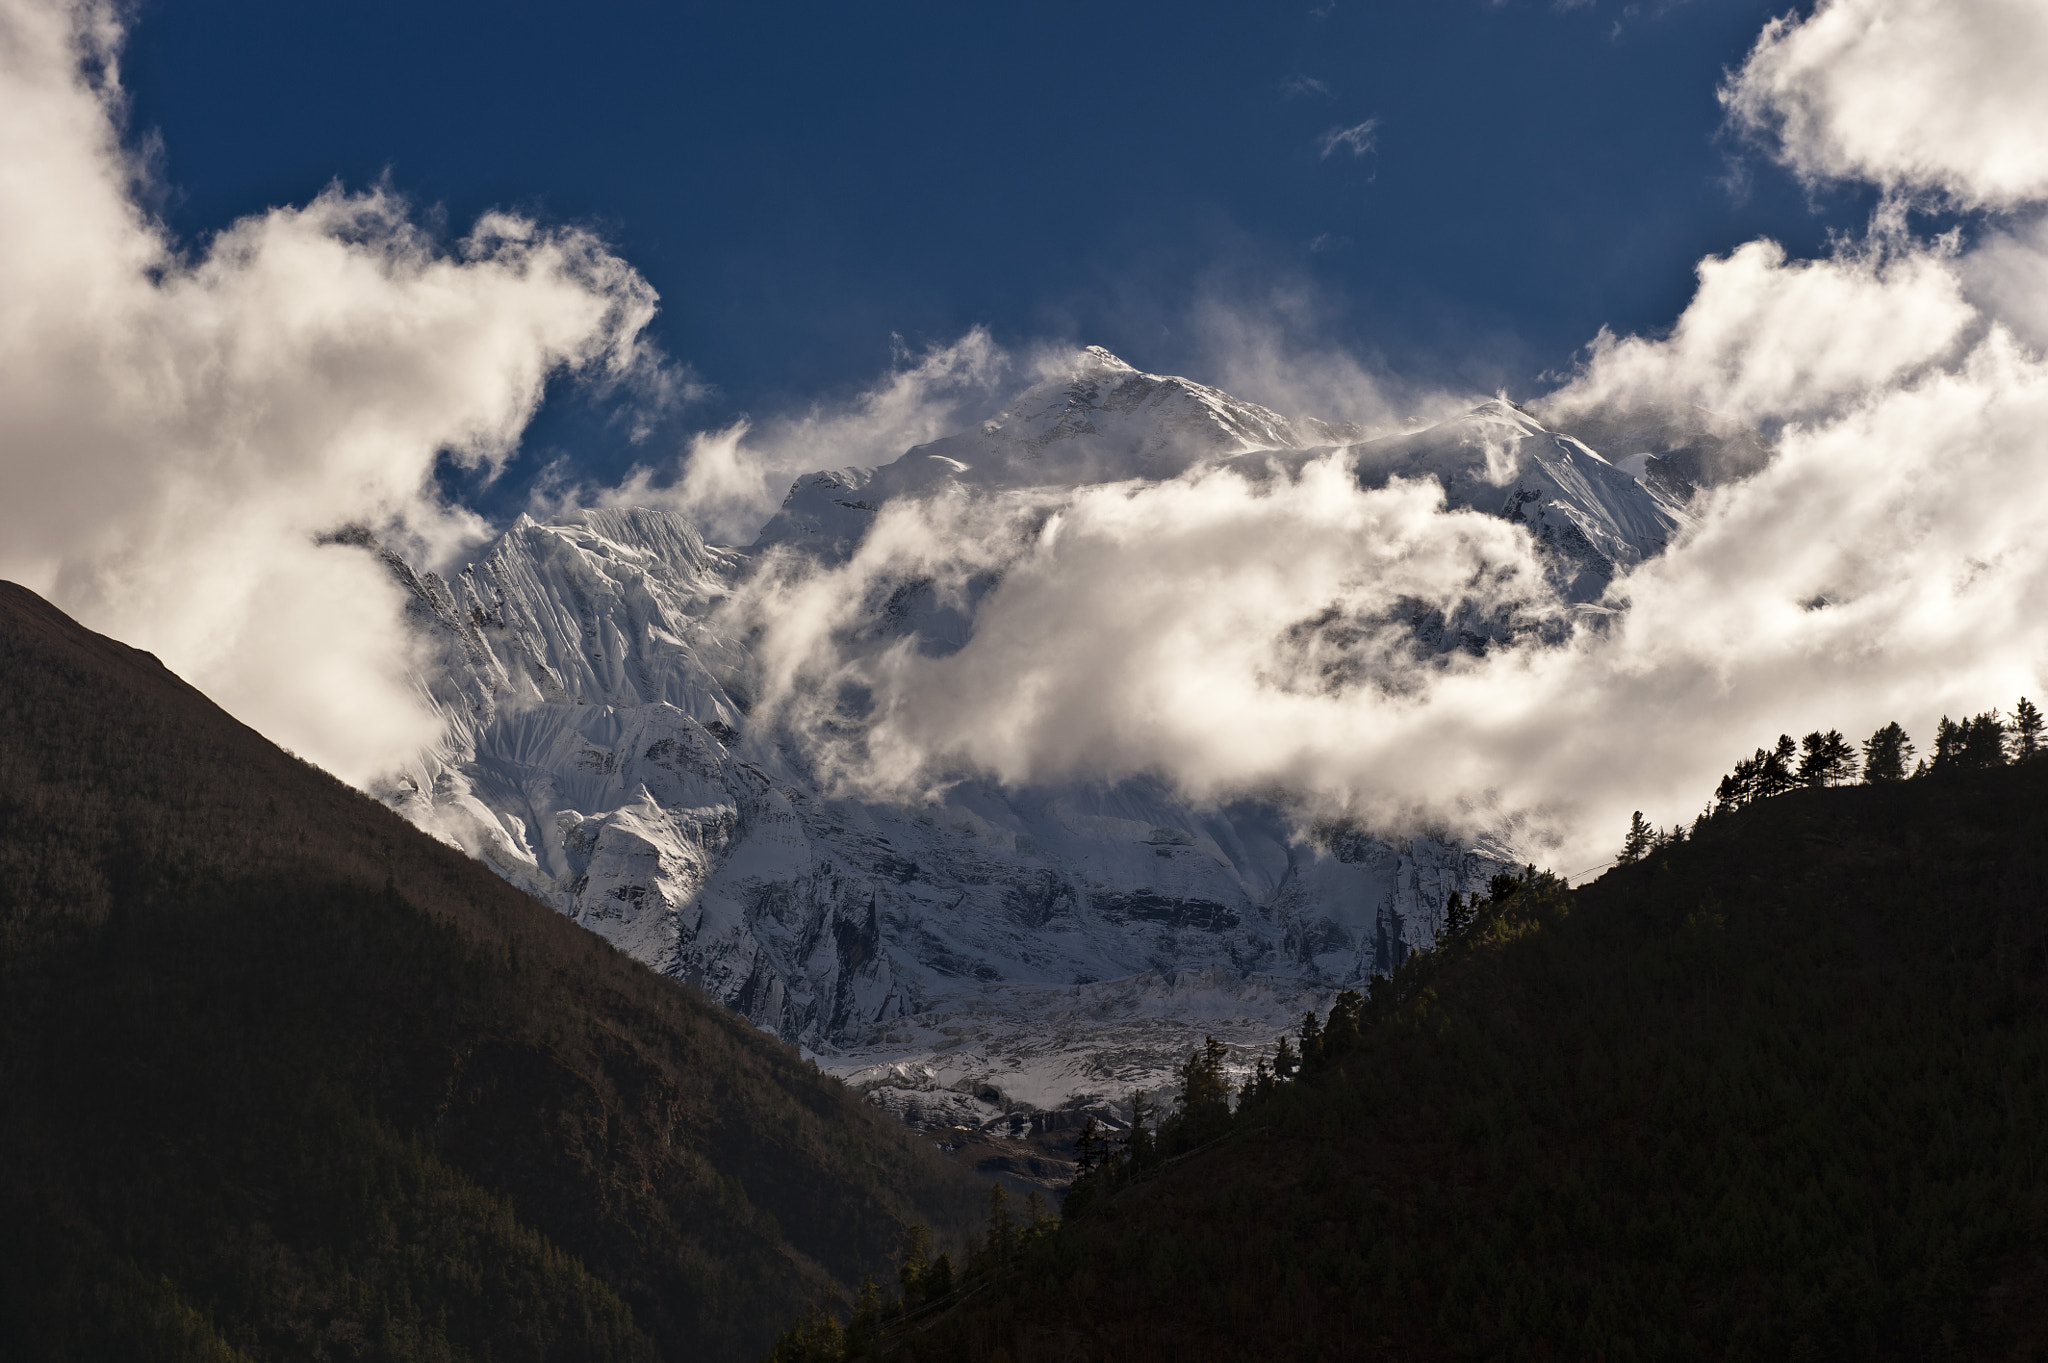 Photograph Annapurna II by Cris RM on 500px